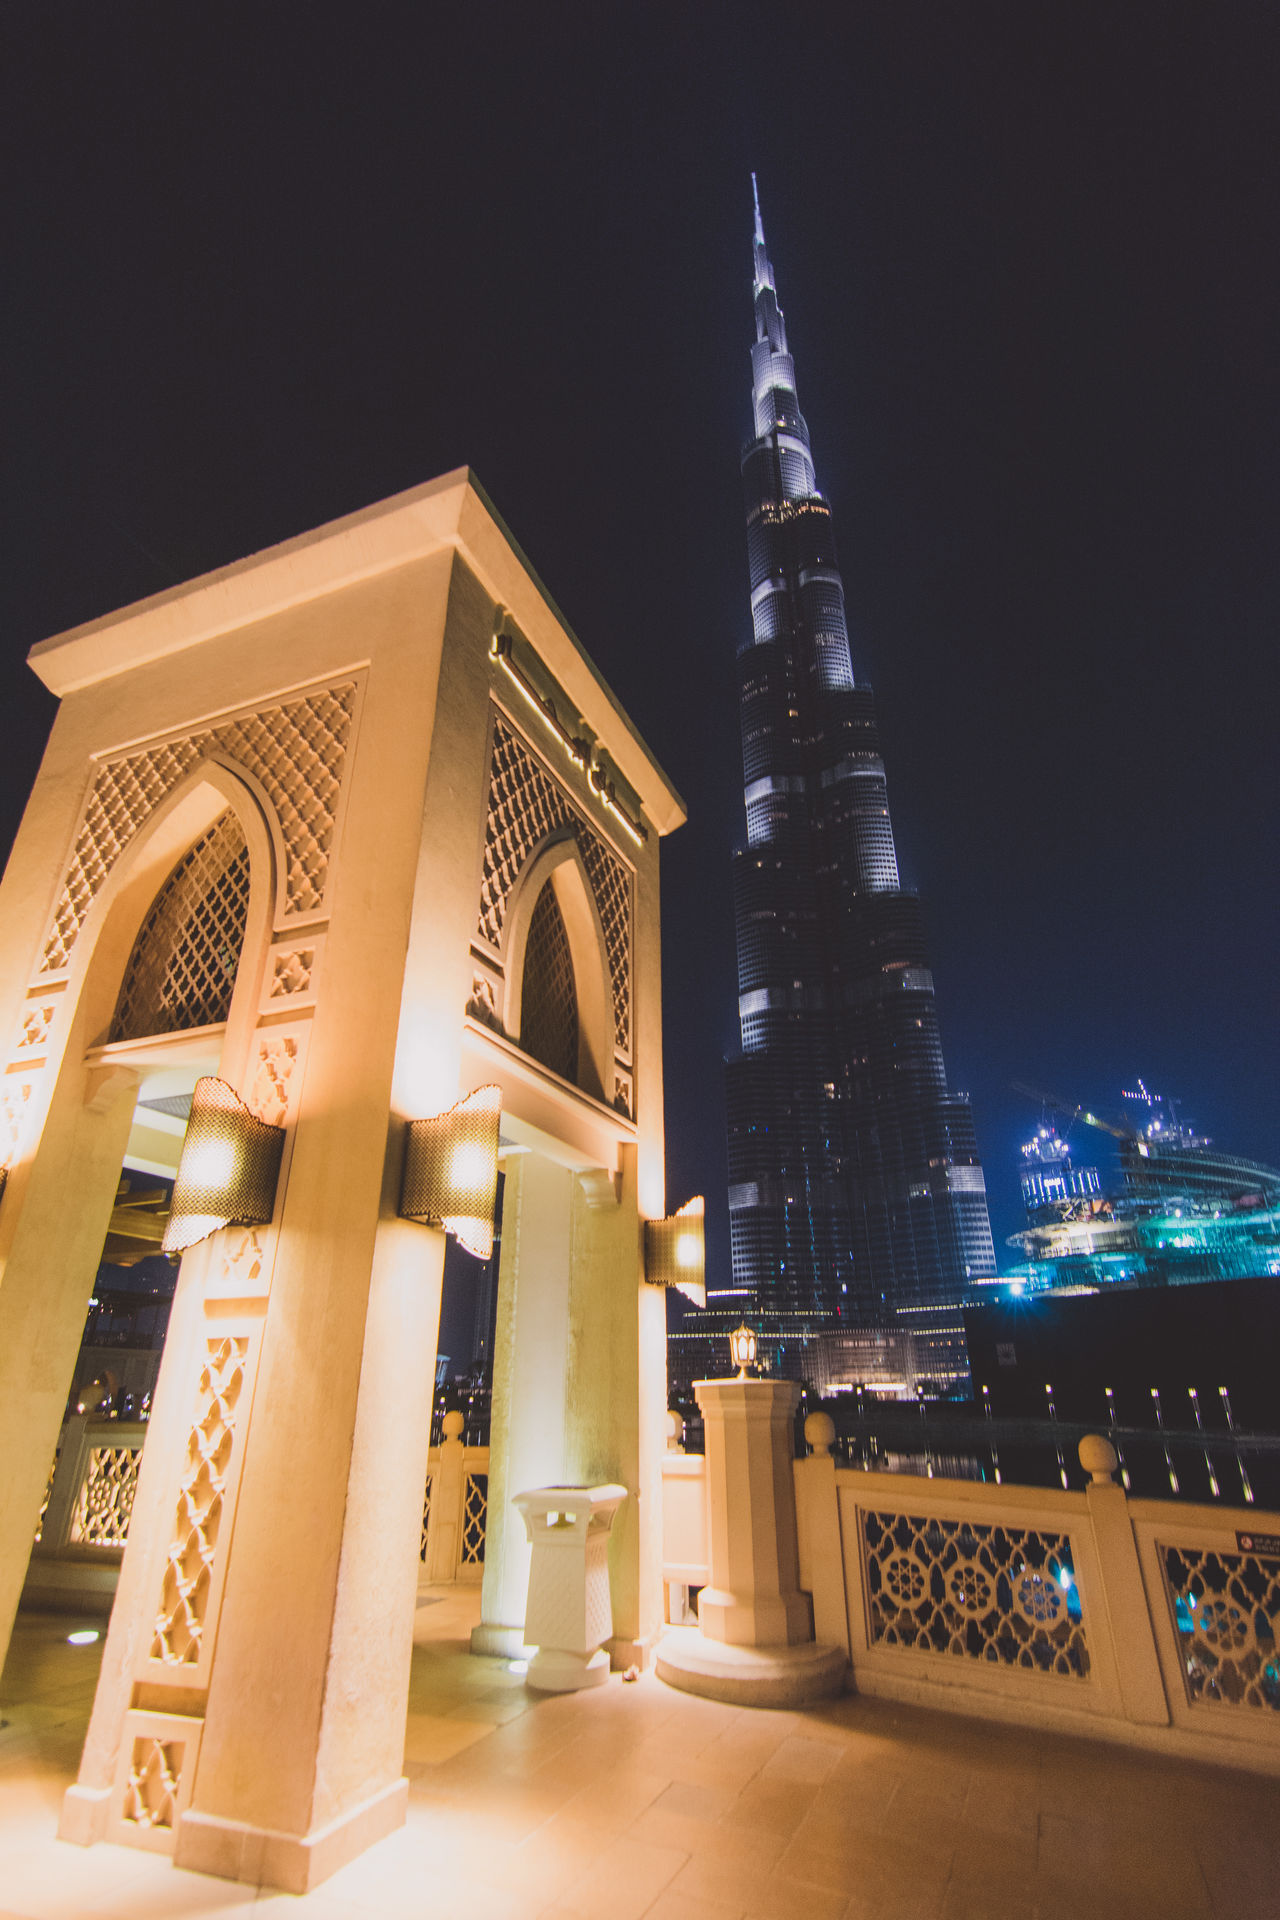 Architecture Built Structure Burj Khalifa Business Finance And Industry City Dubai DXB Façade Illuminated Night No People Outdoors Place Of Worship Religion Sky Skyscraper Tourism Tower Travel Travel Destinations